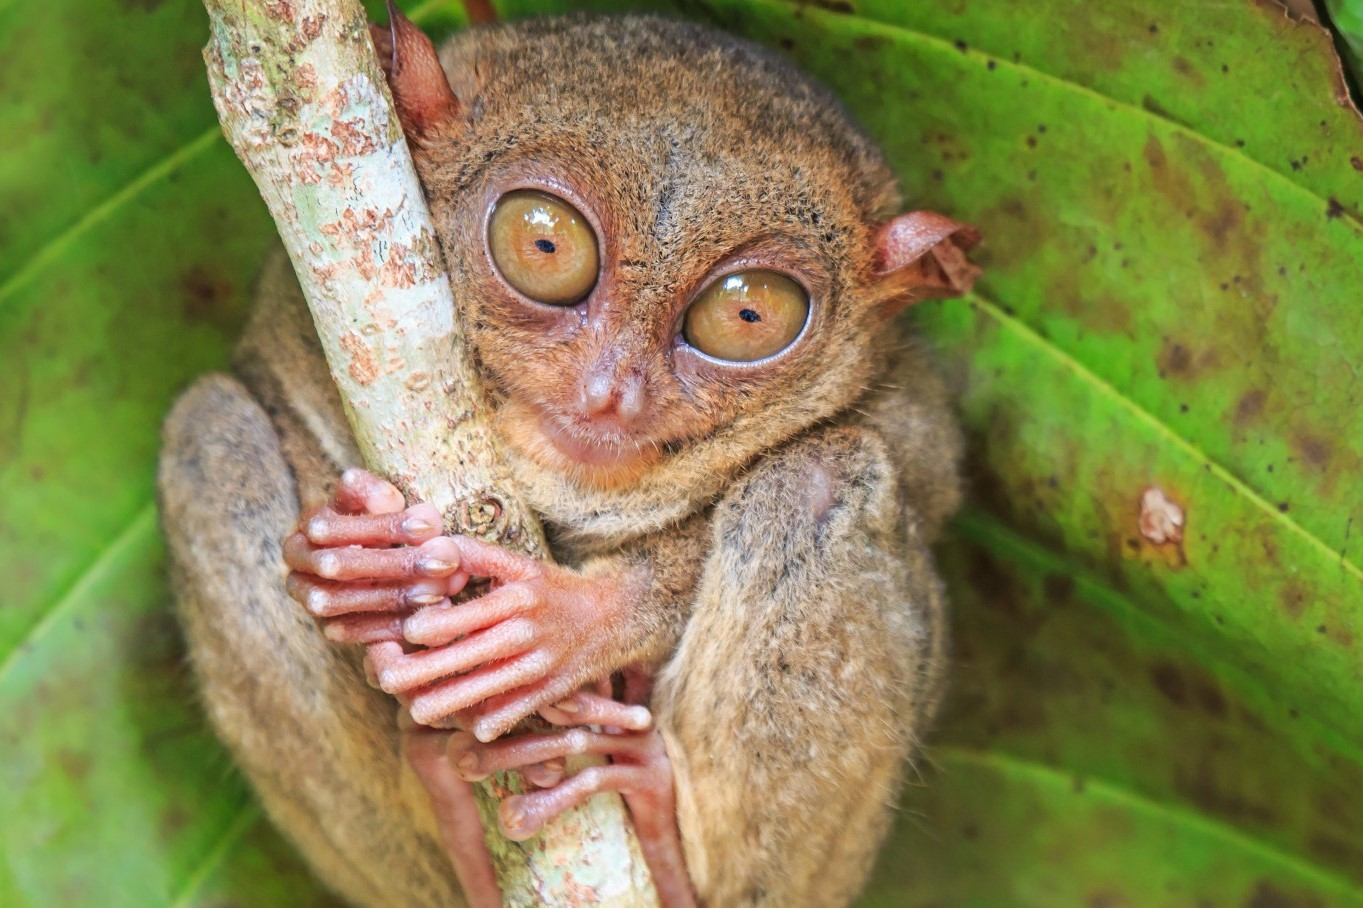 Philippines holidays: seeing tarsiers